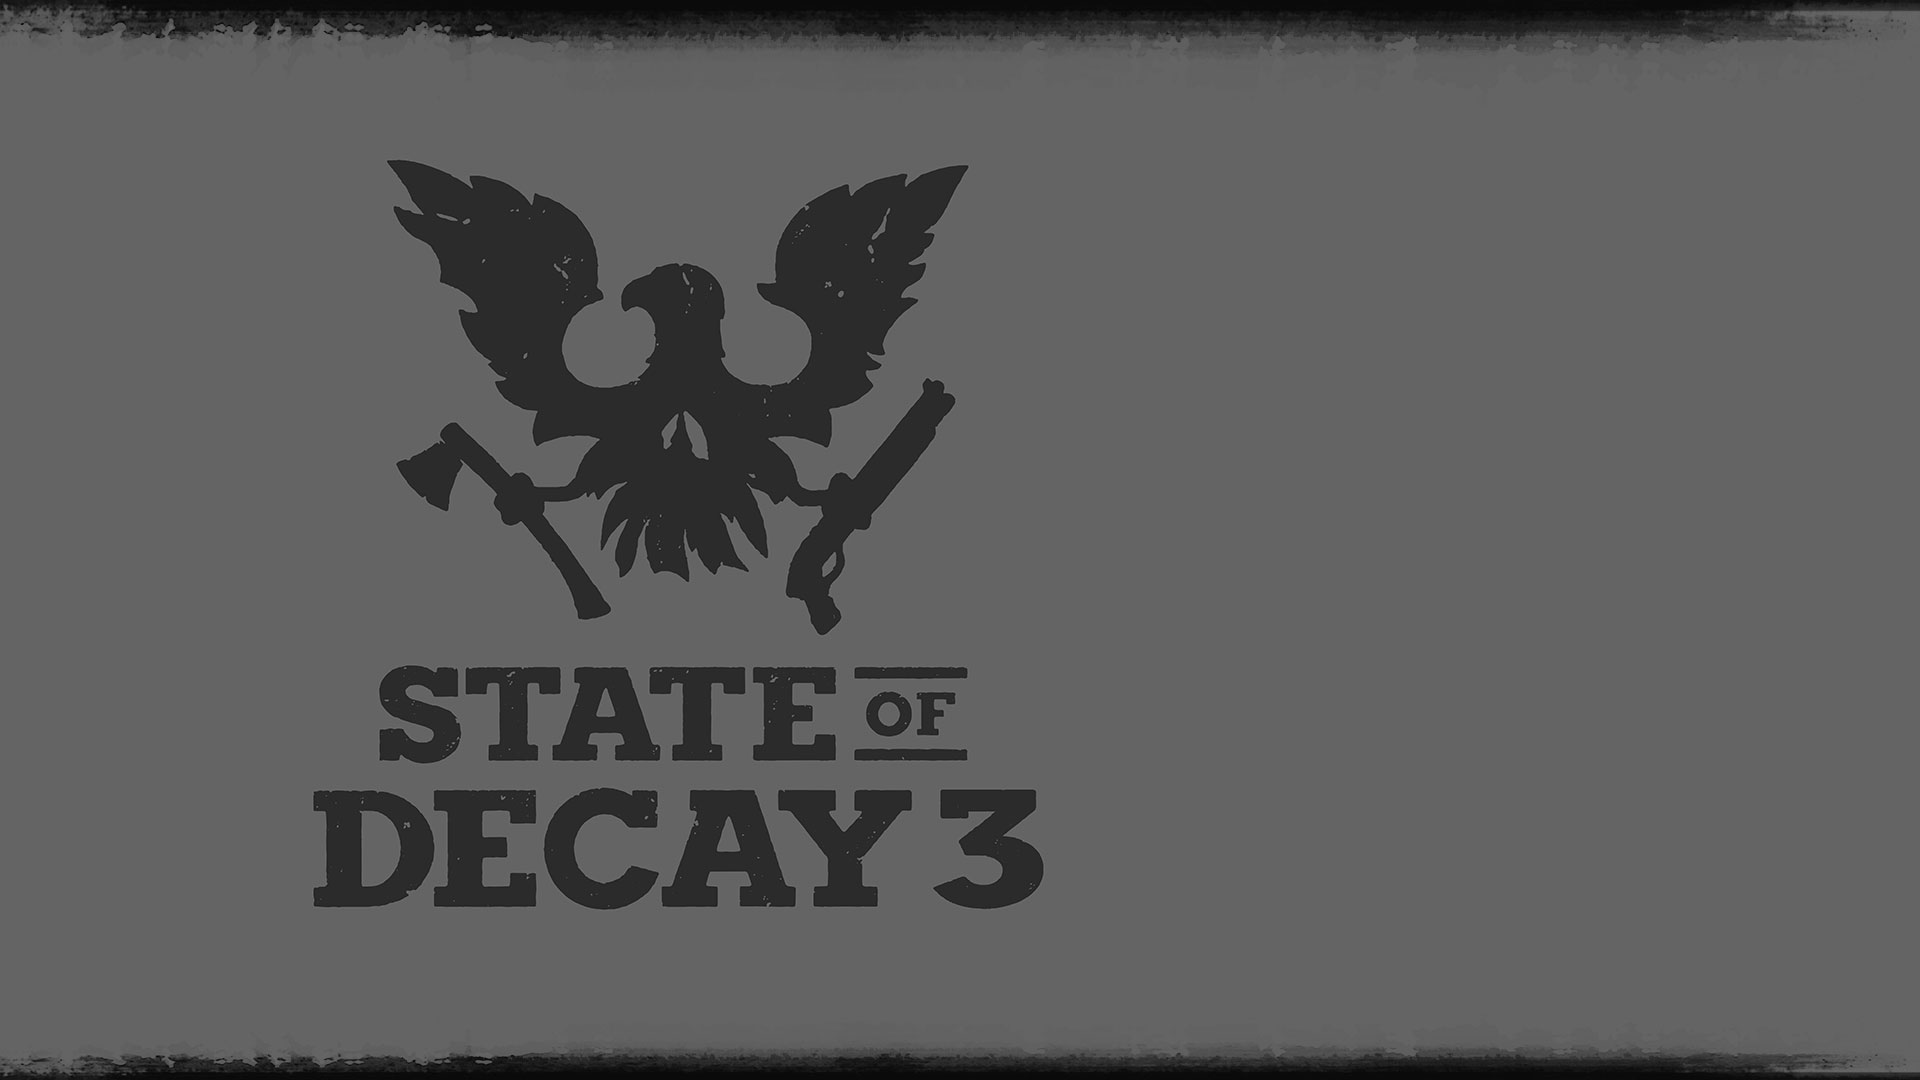 Logotipo de State of Decay 3